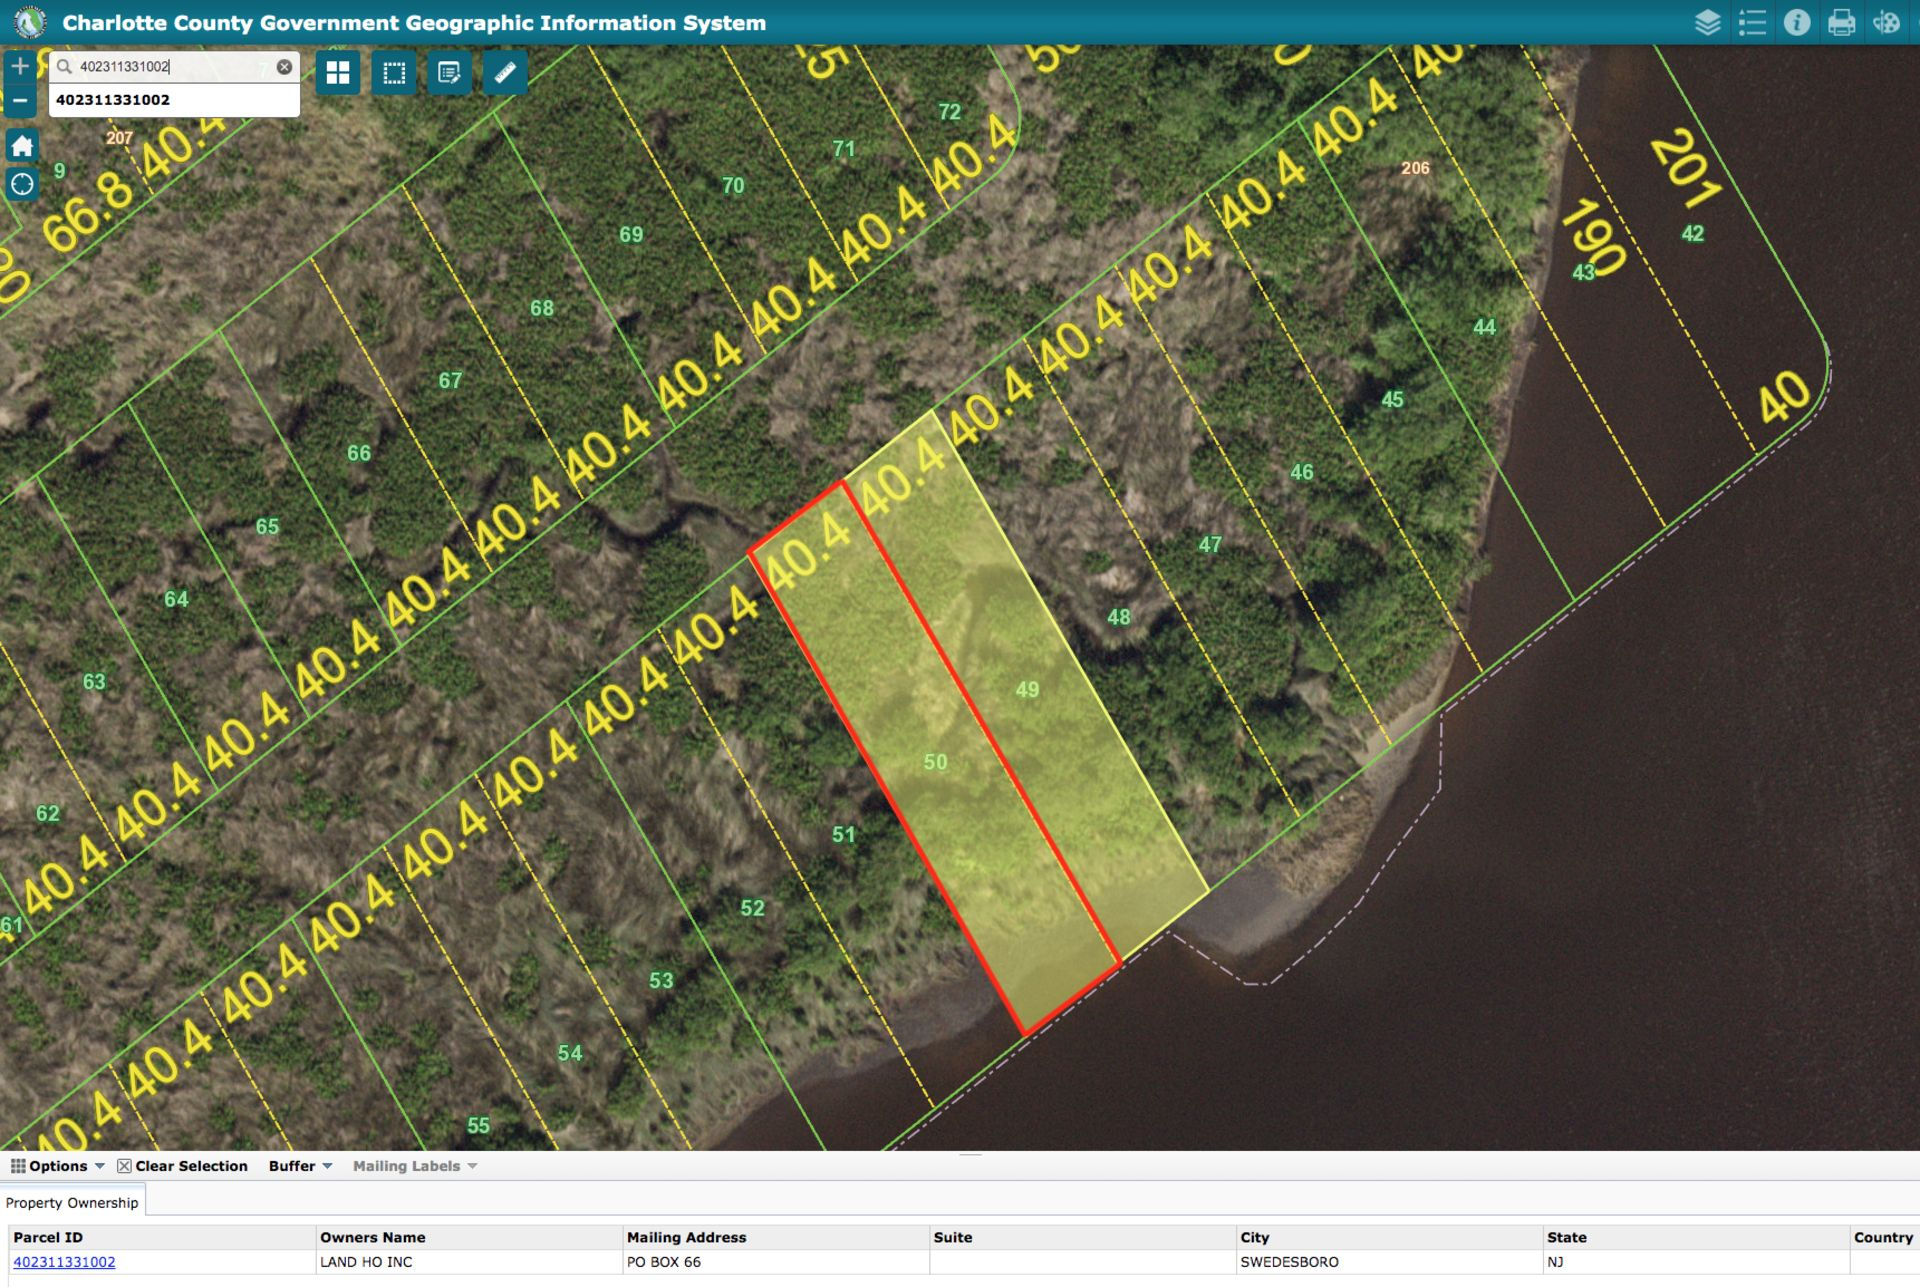 Own a Lot On the Peace River in Charlotte County, Florida! - Image 2 of 4